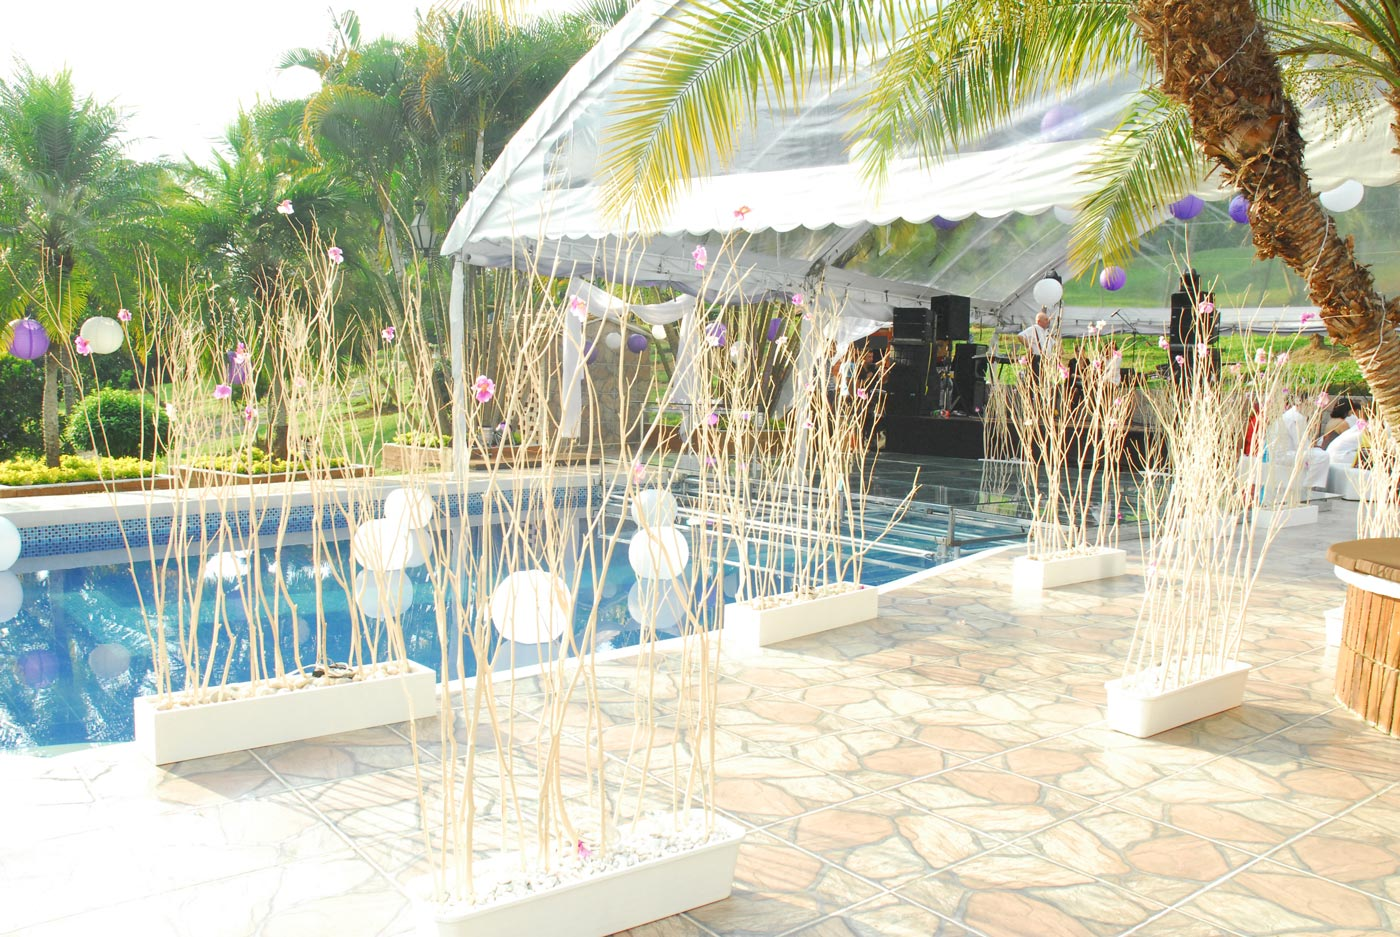 Arreglos De Piscinas Decoracion Bodas Al Aire Libre Interesting Ideas Para